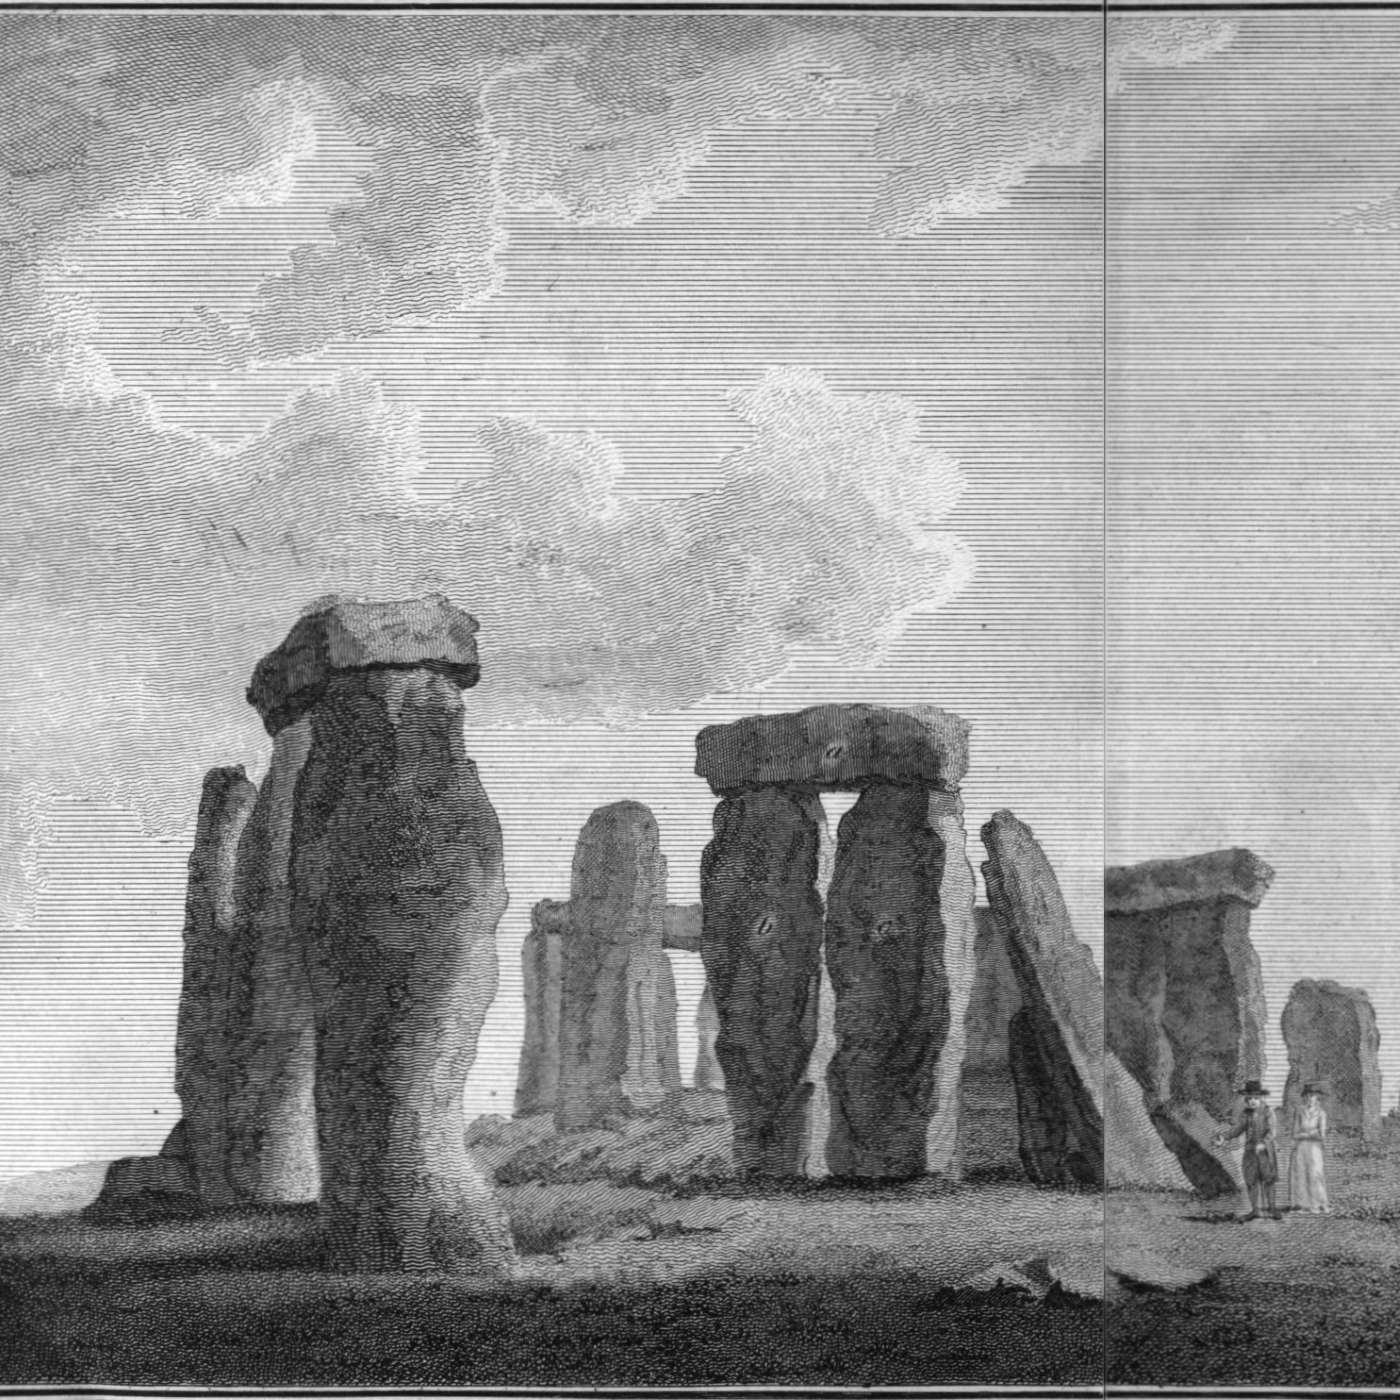 GEU-Z008: Account of the Fall of some of the Stones in Stonehenge (1797)